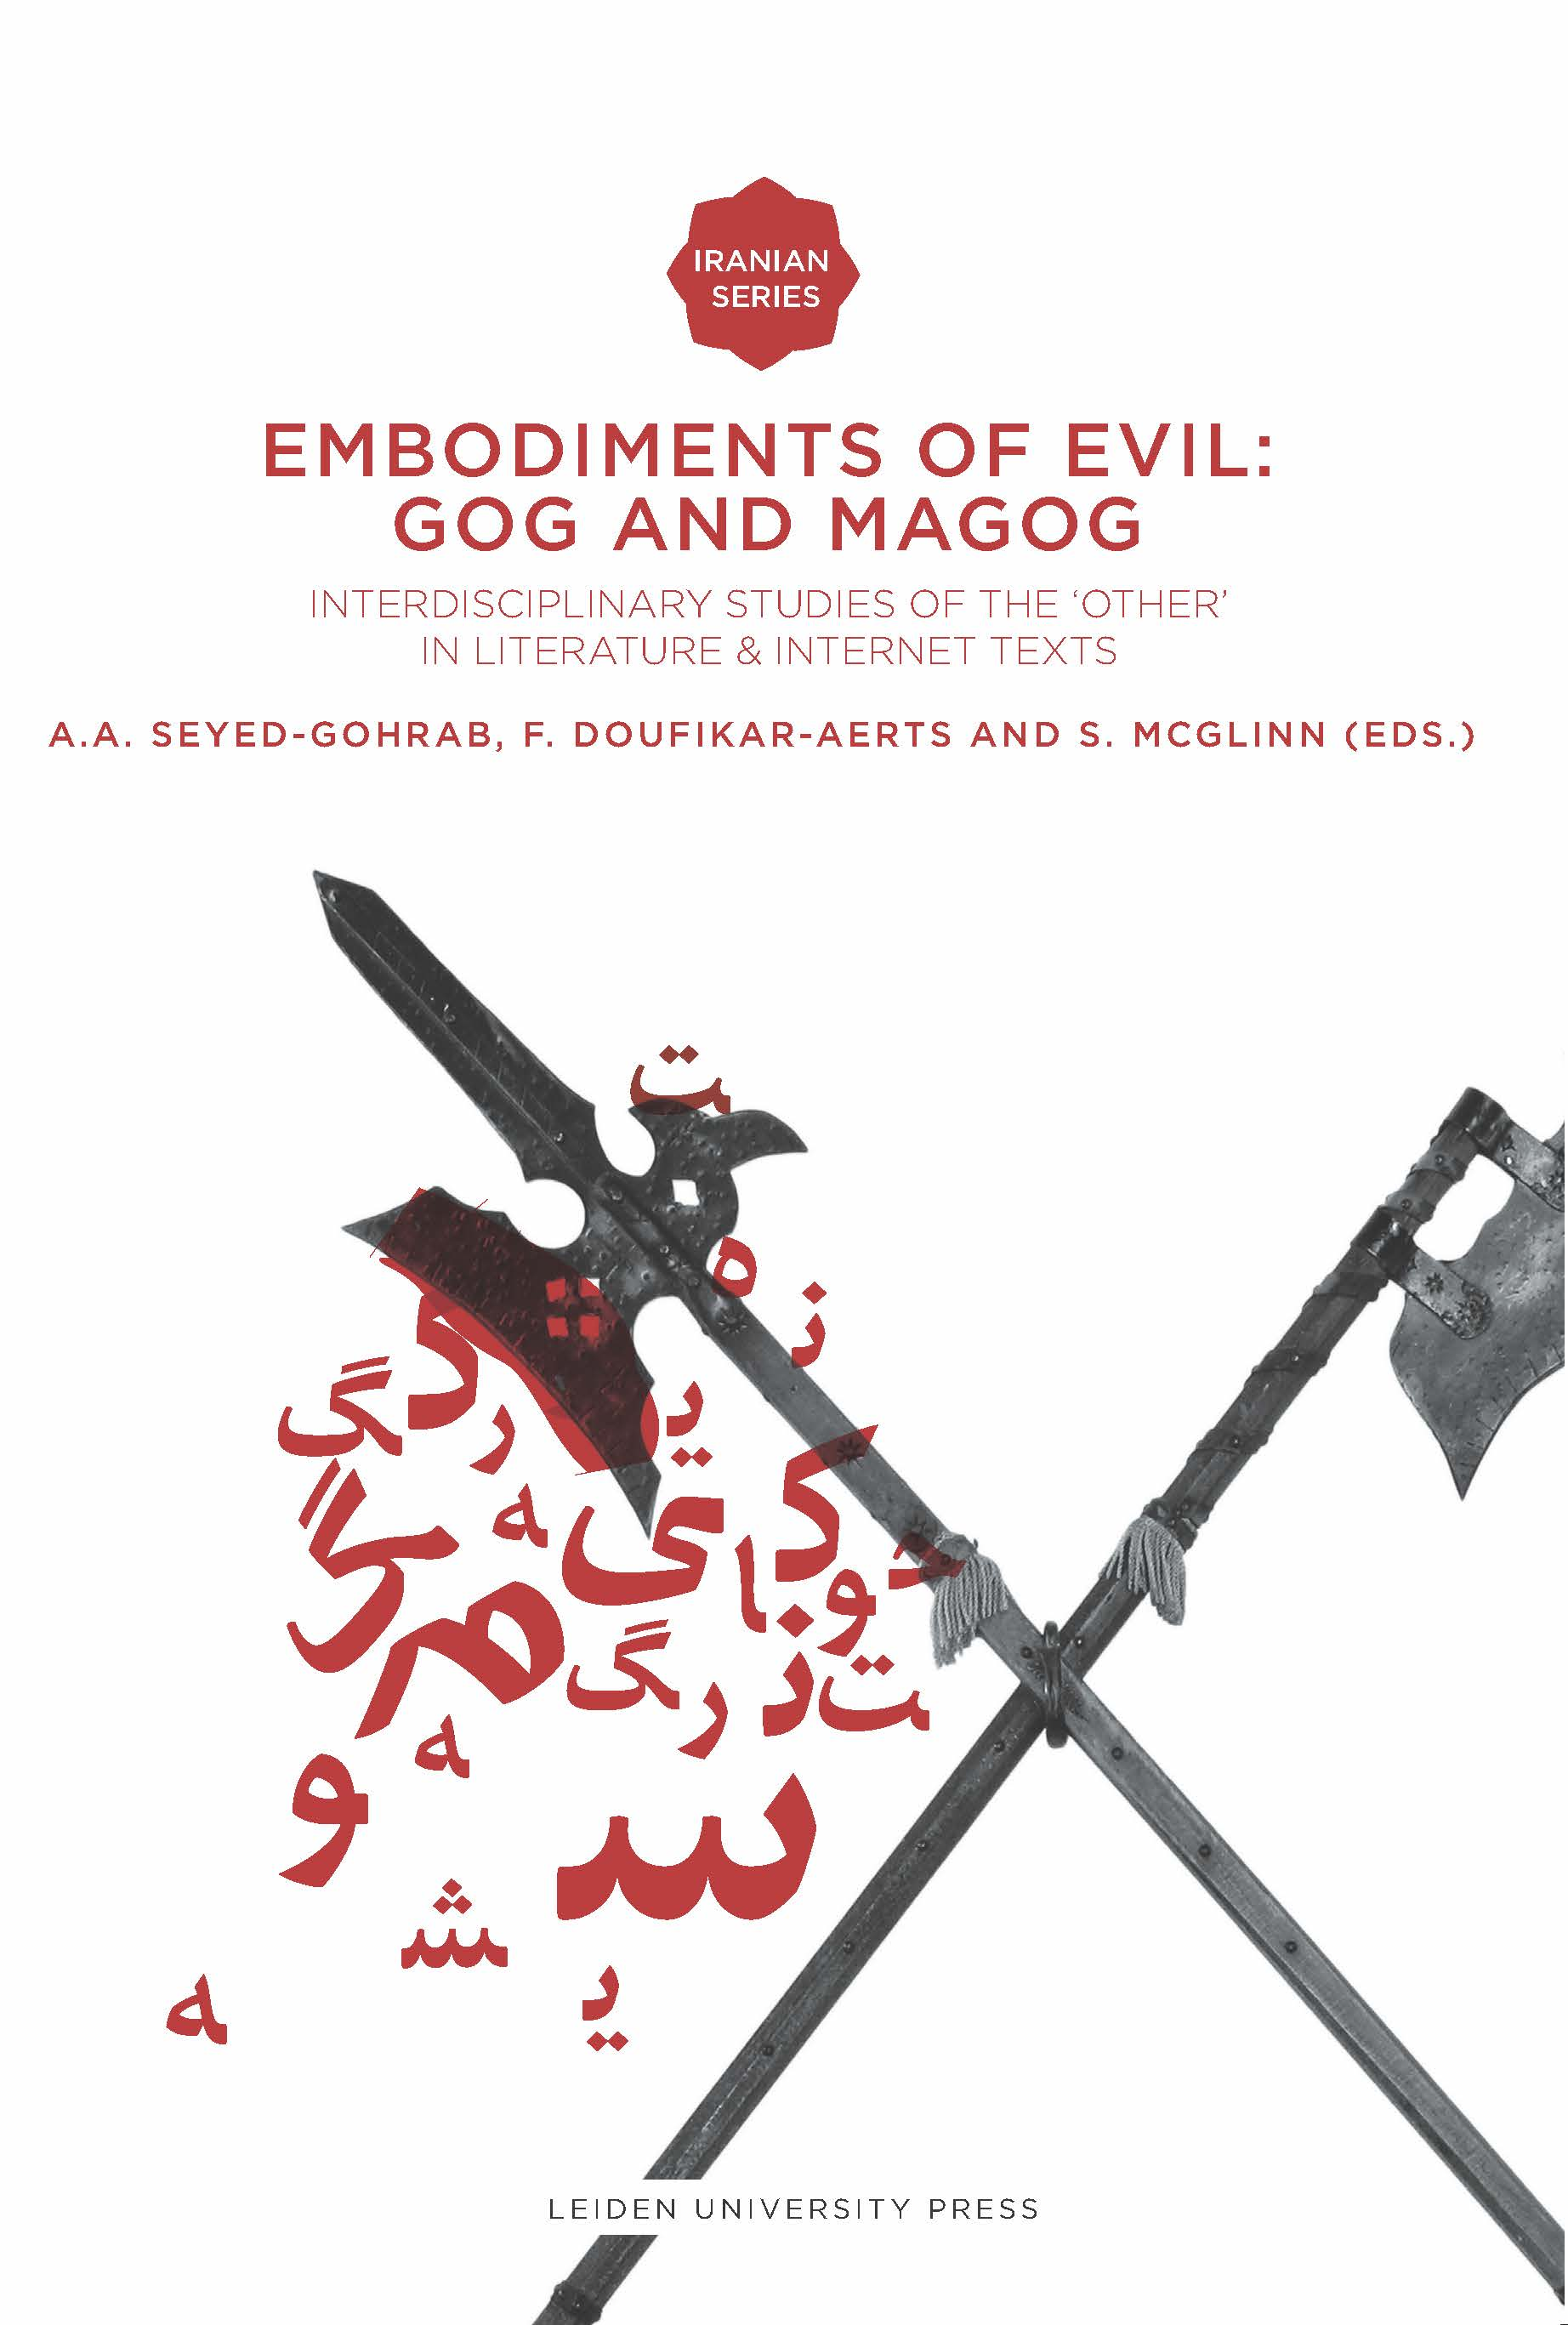 Embodiments of Evil: Gog and Magog